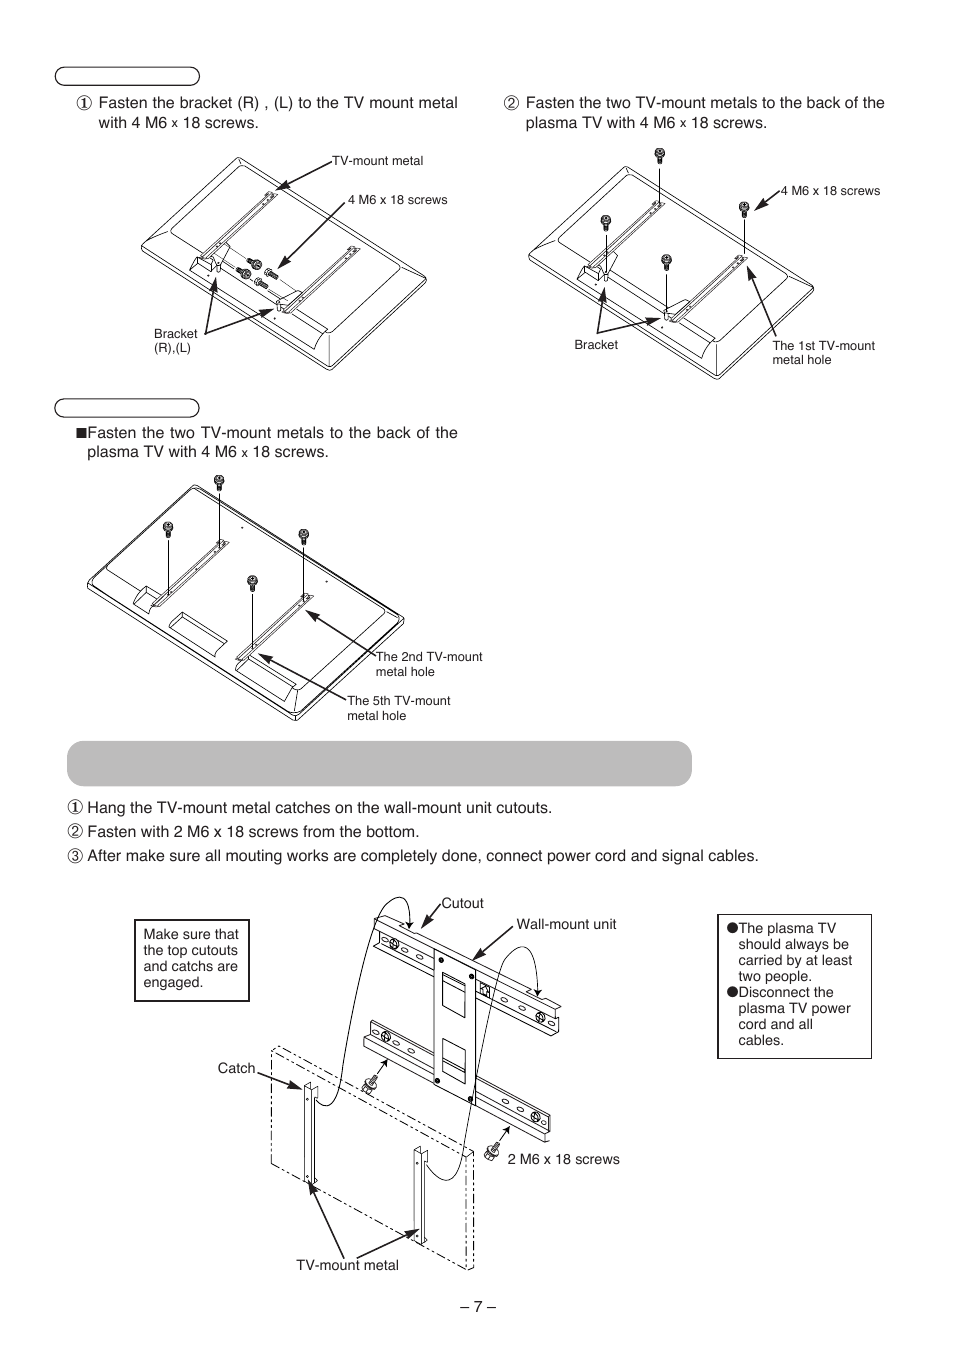 Installing The Plasma Tv On Wall Mount Hitachi 42pma500 User Wiring Diagram Manual Page 65 68